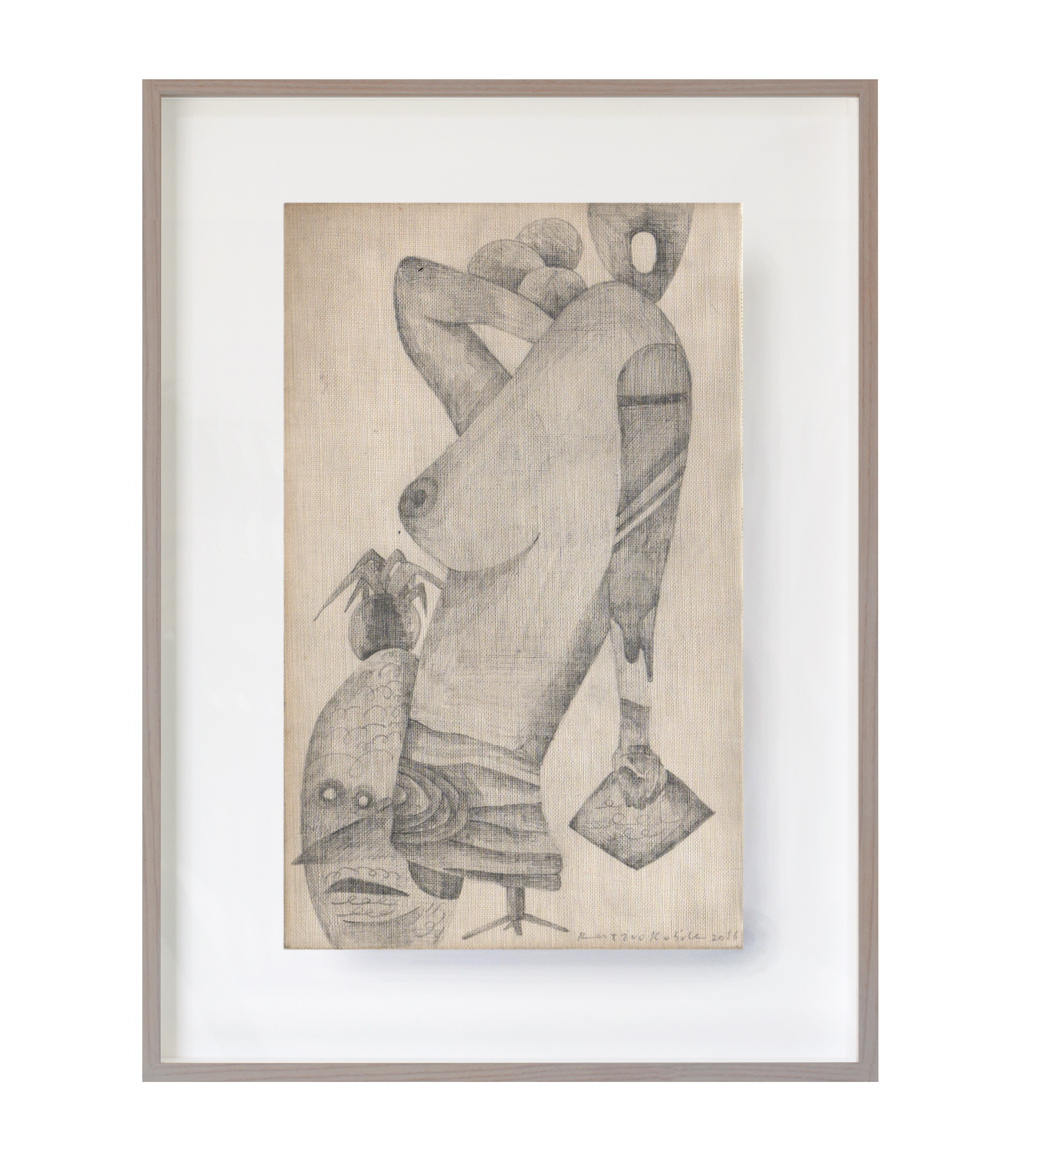 Untitled,   2016   (Study for Sculpture)    11cm x 17.5cm  Pencils on paper